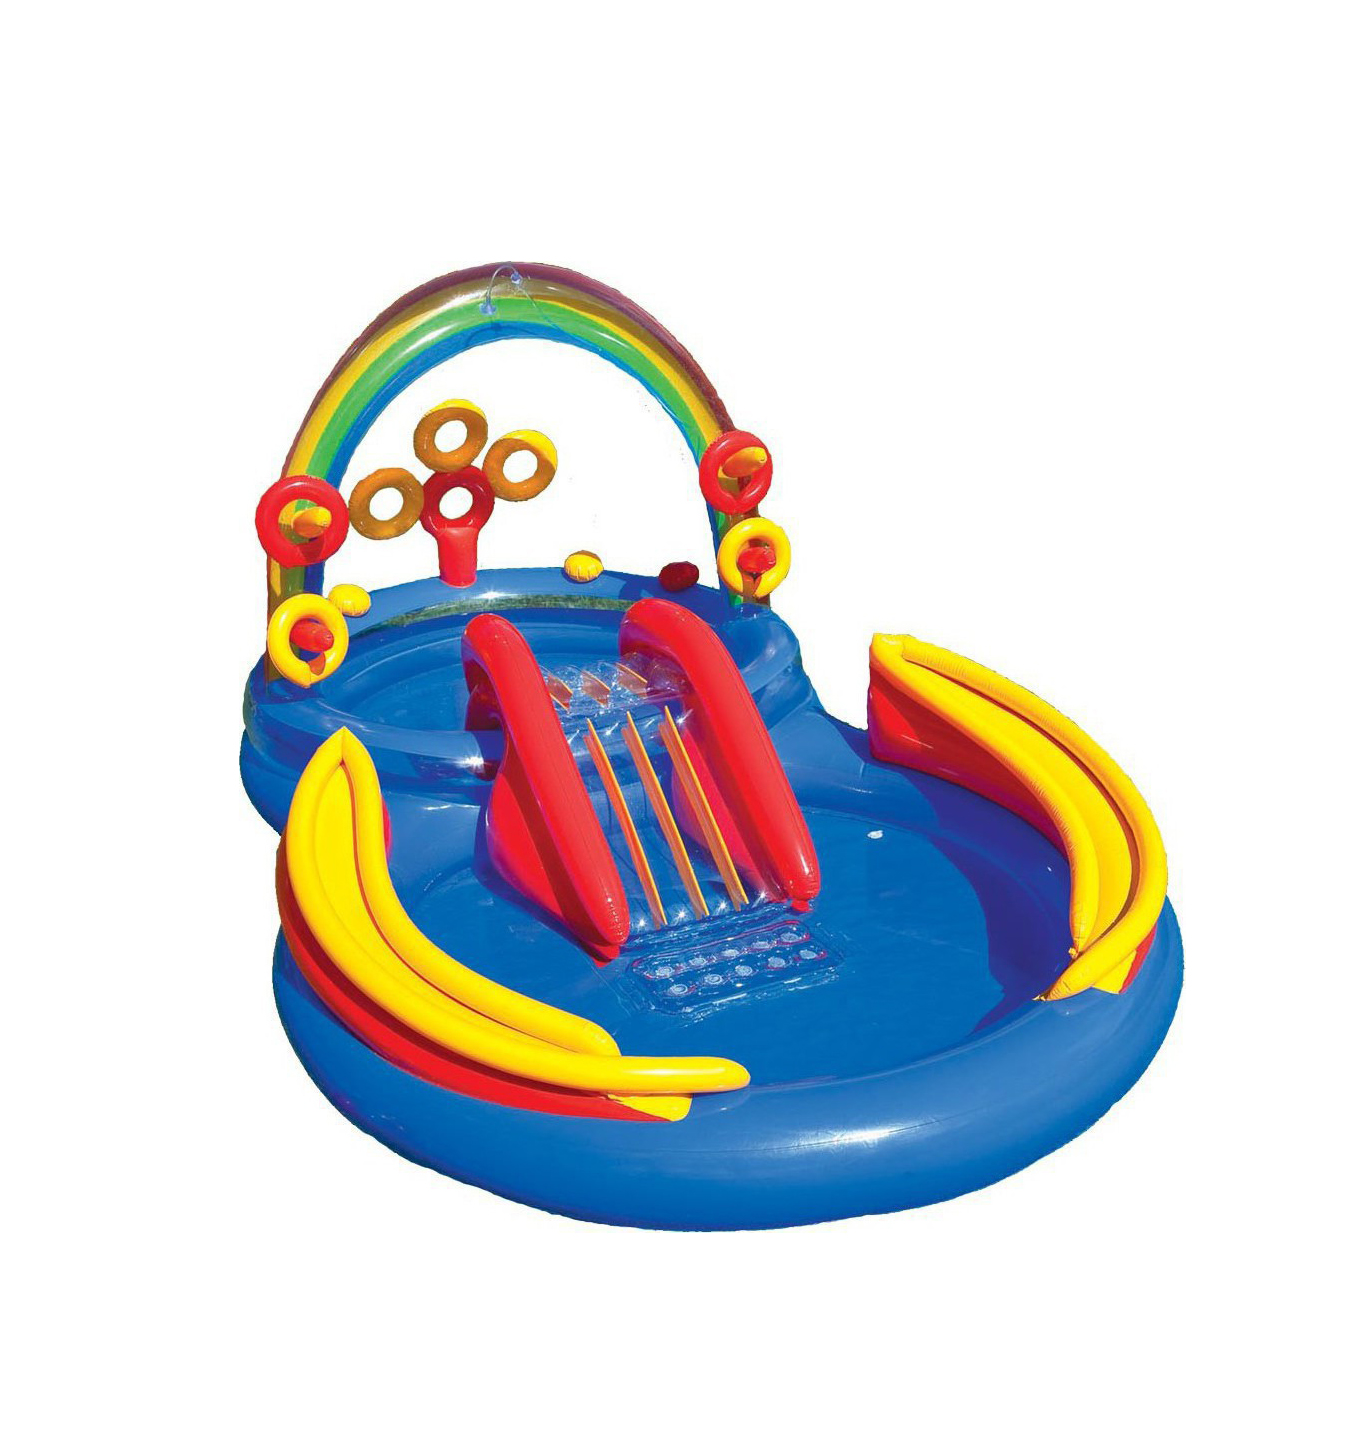 Φουσκωτή Πισίνα Intex Rainbow Ring Play Center 297x193x135cm 157453NP